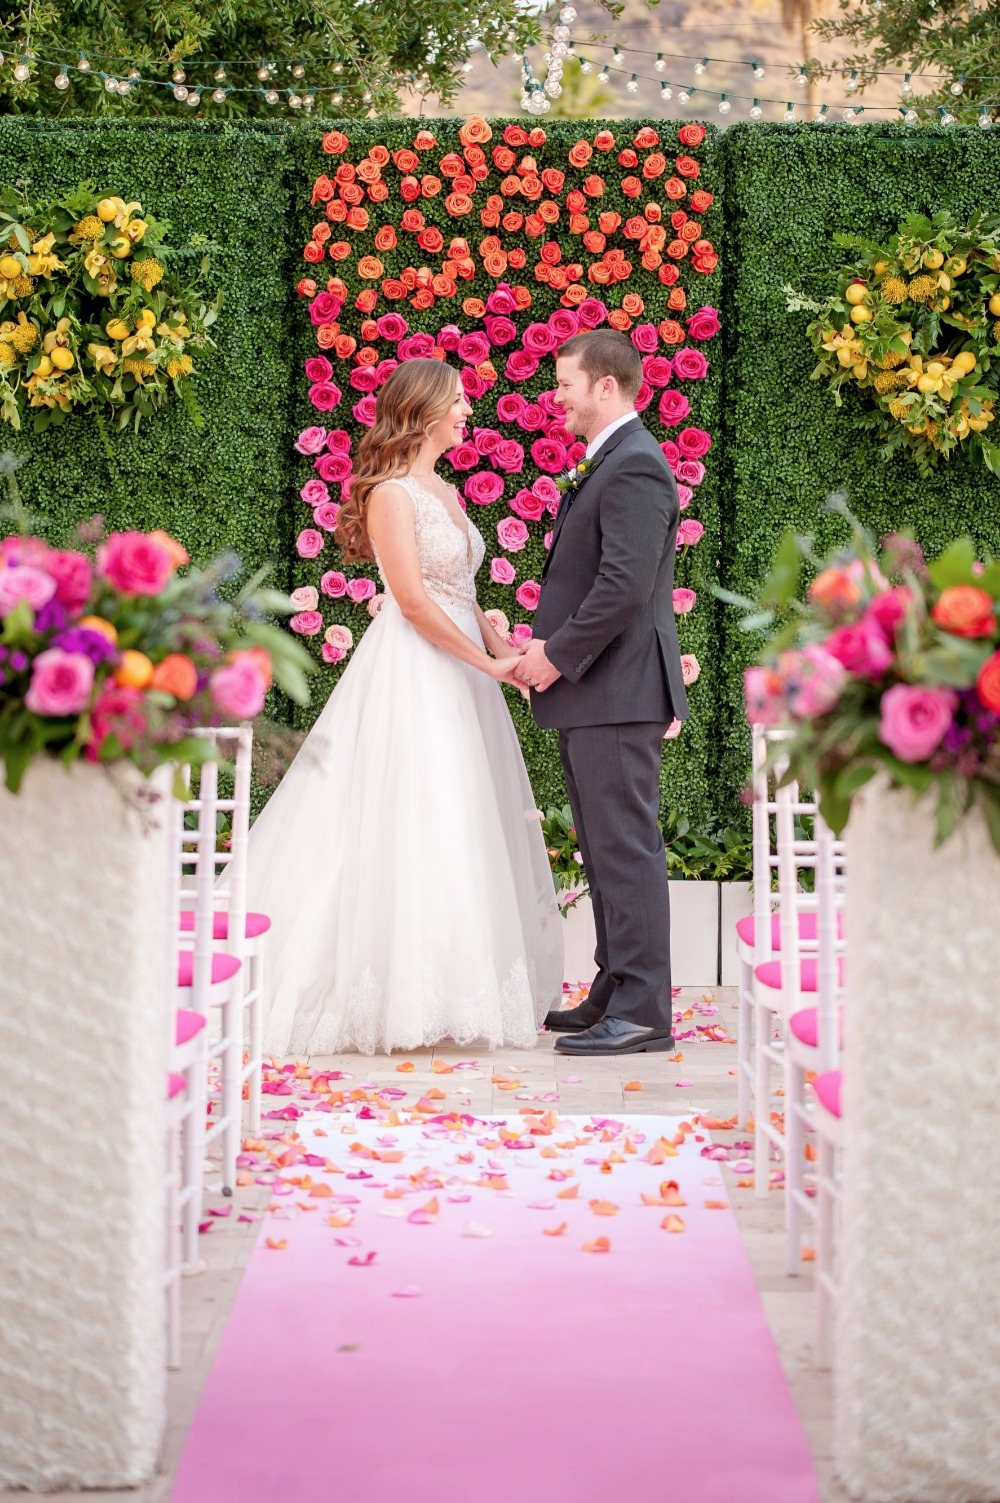 Colorful wedding ceremony ideas